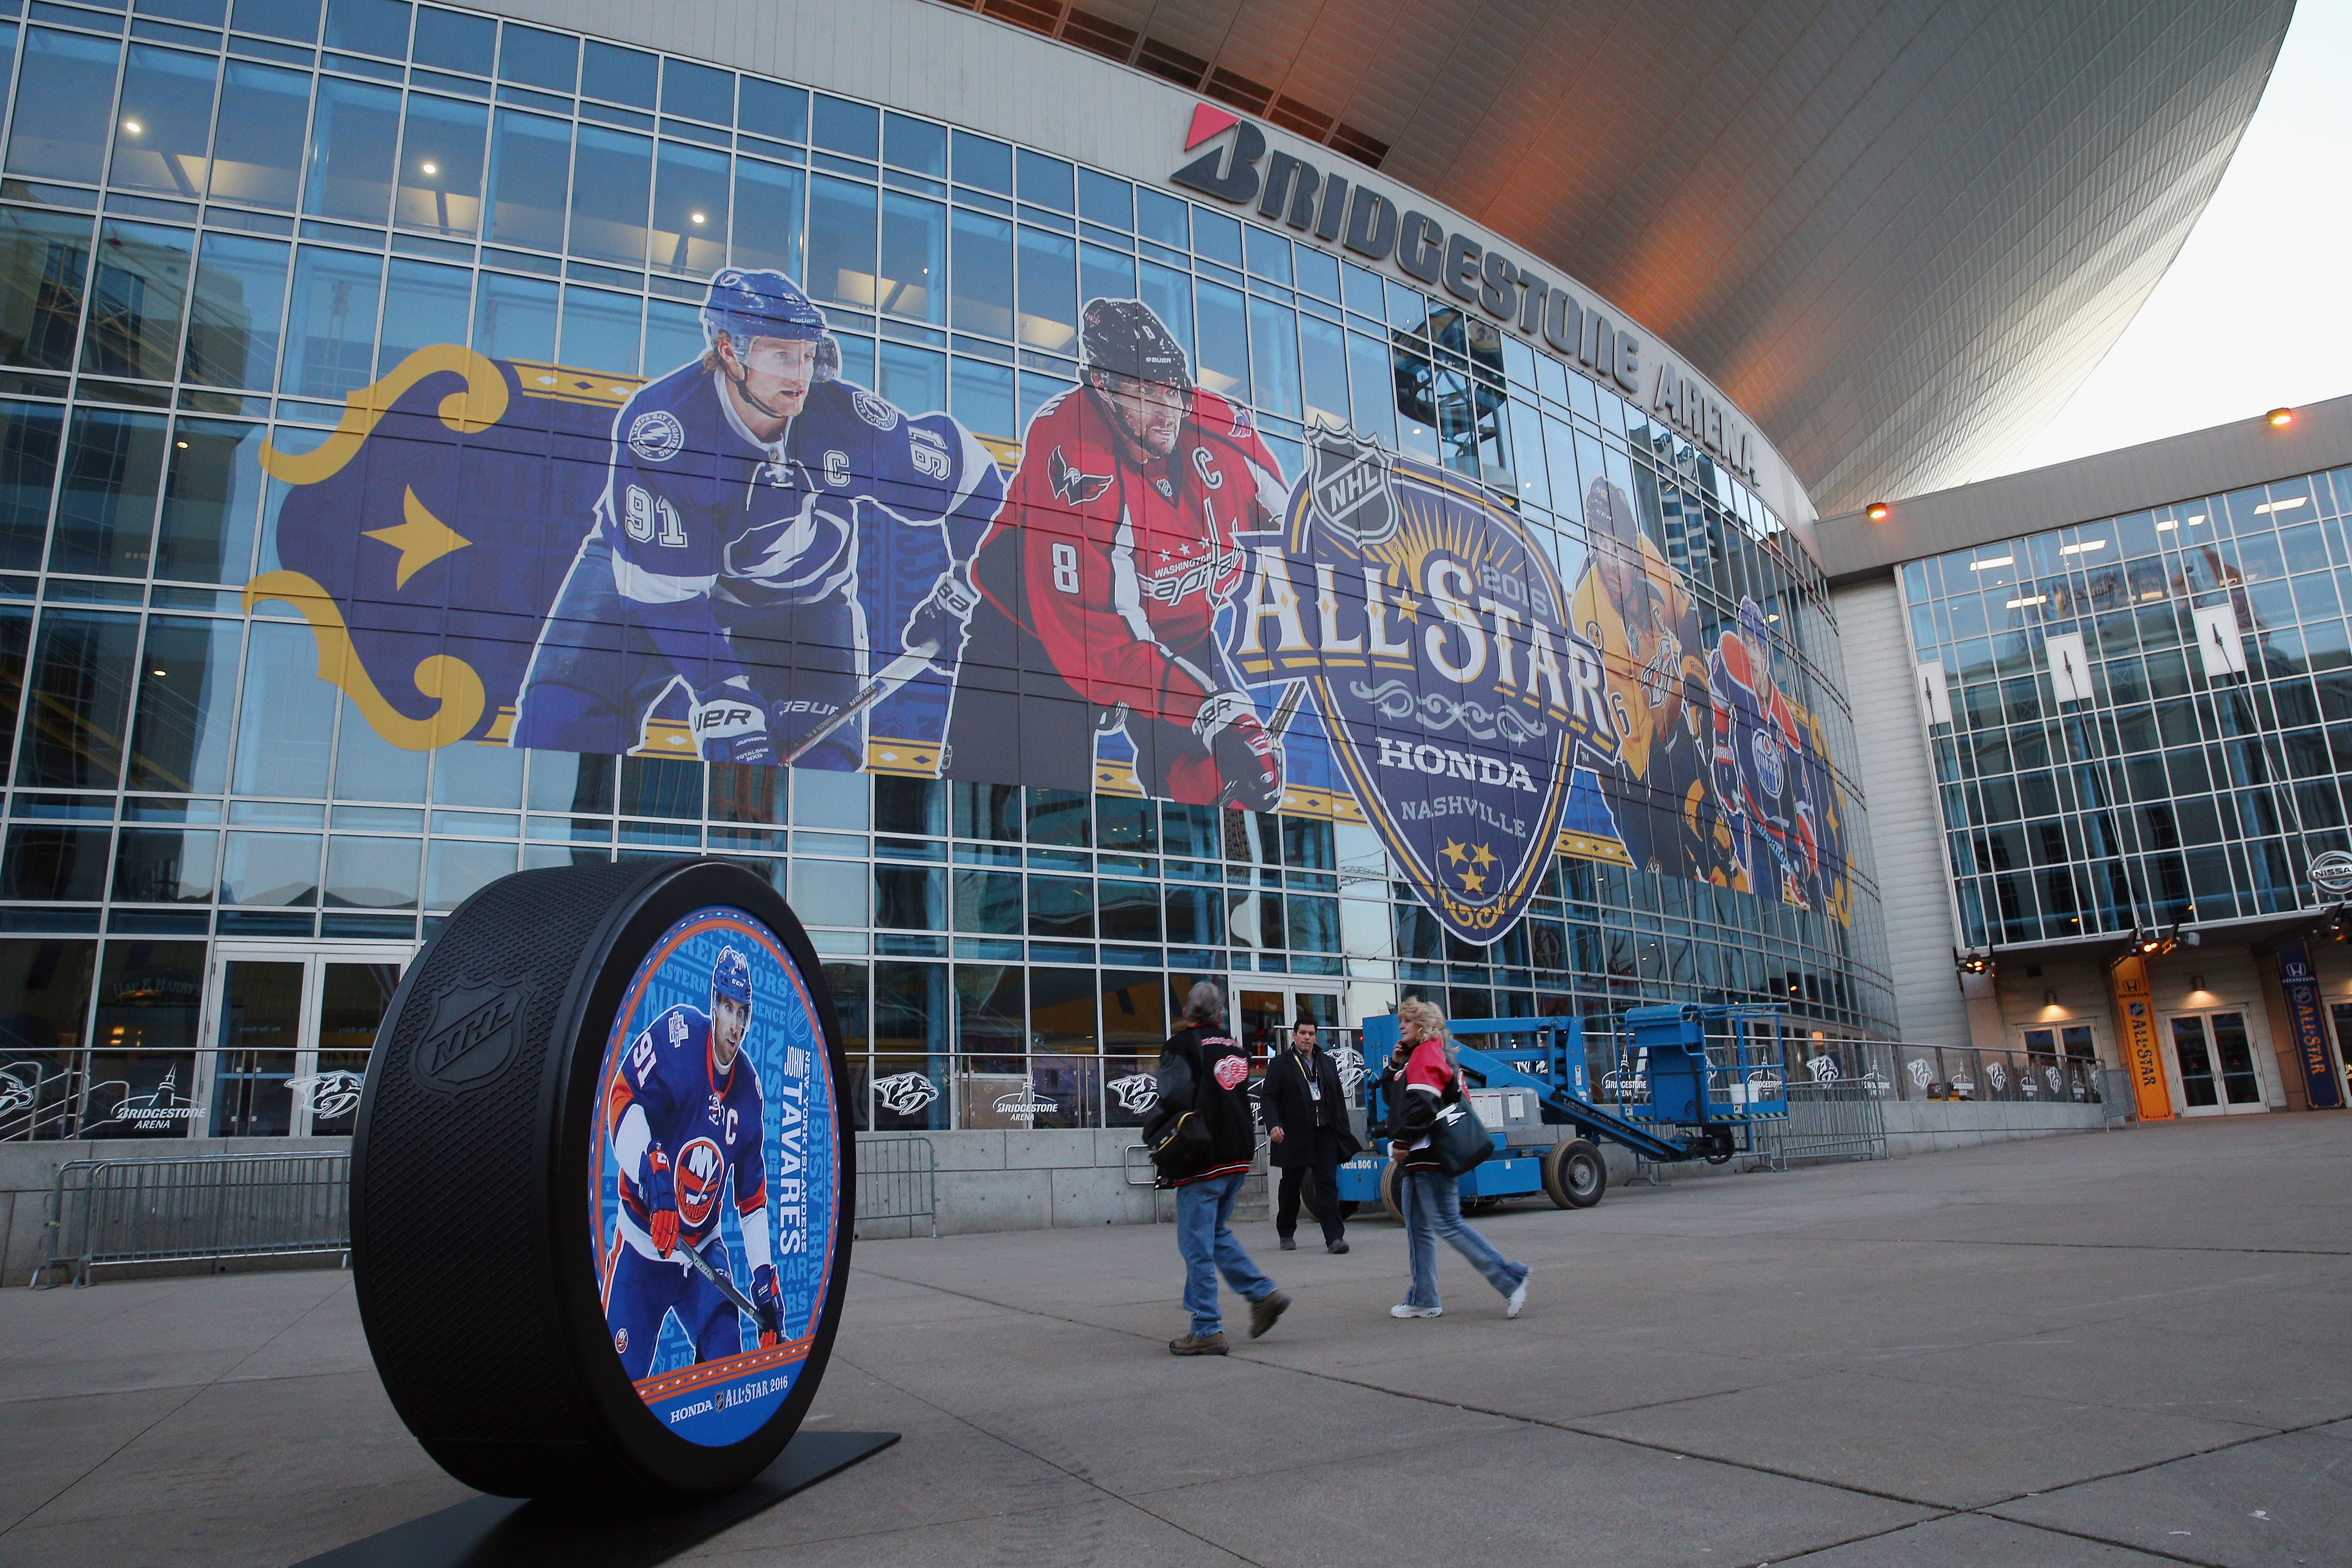 Nashville's Bridgestone Arena is set for All-Star festivities even though one of the players on its marquee -- Washington's Alex Ovechkin -- decided he's not (Getty Images).